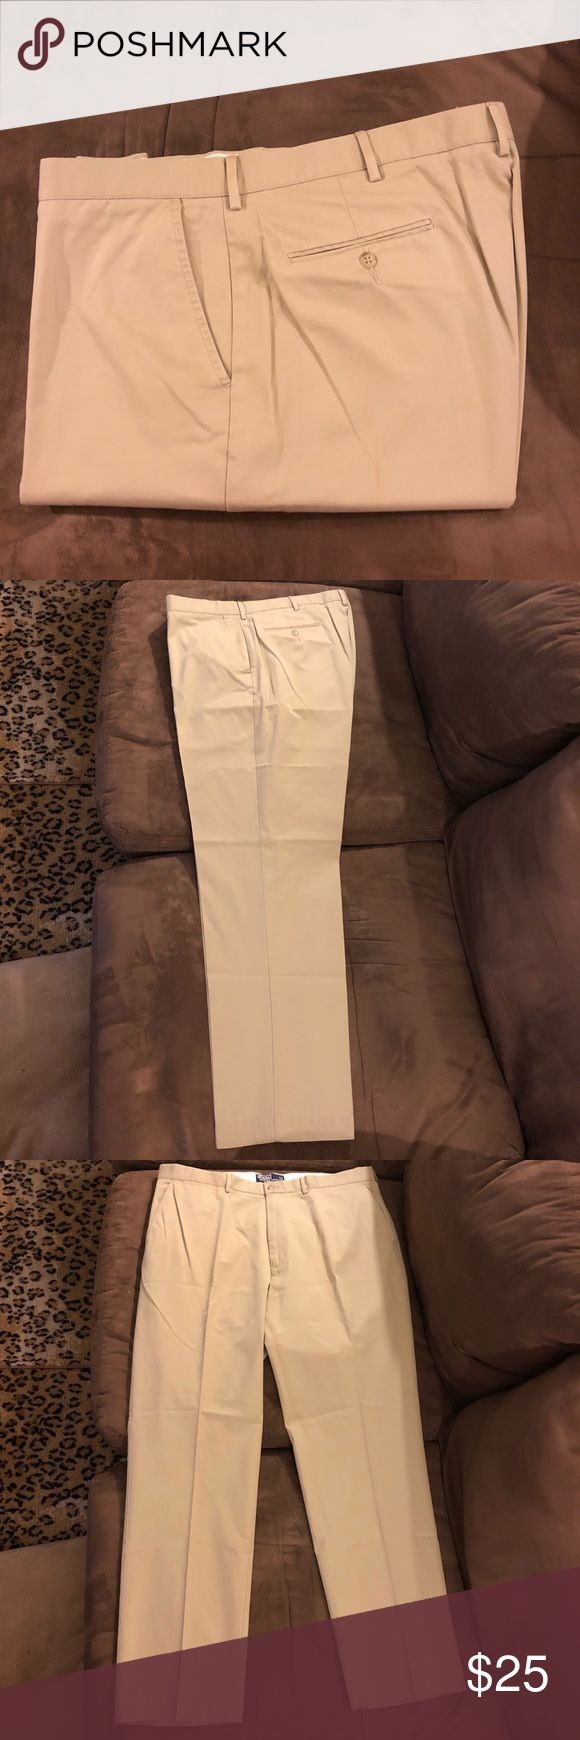 Polo Ralph Lauren Khaki Tan Chino Pants 38x32 Polo Ralph Lauren Solid Khaki Tan Chino Pants size 38x32, Flat Front and Plain bottom! Great condition! Please make reasonable offers and bundle! Ask questions! Polo by Ralph Lauren Pants Chinos & Khakis